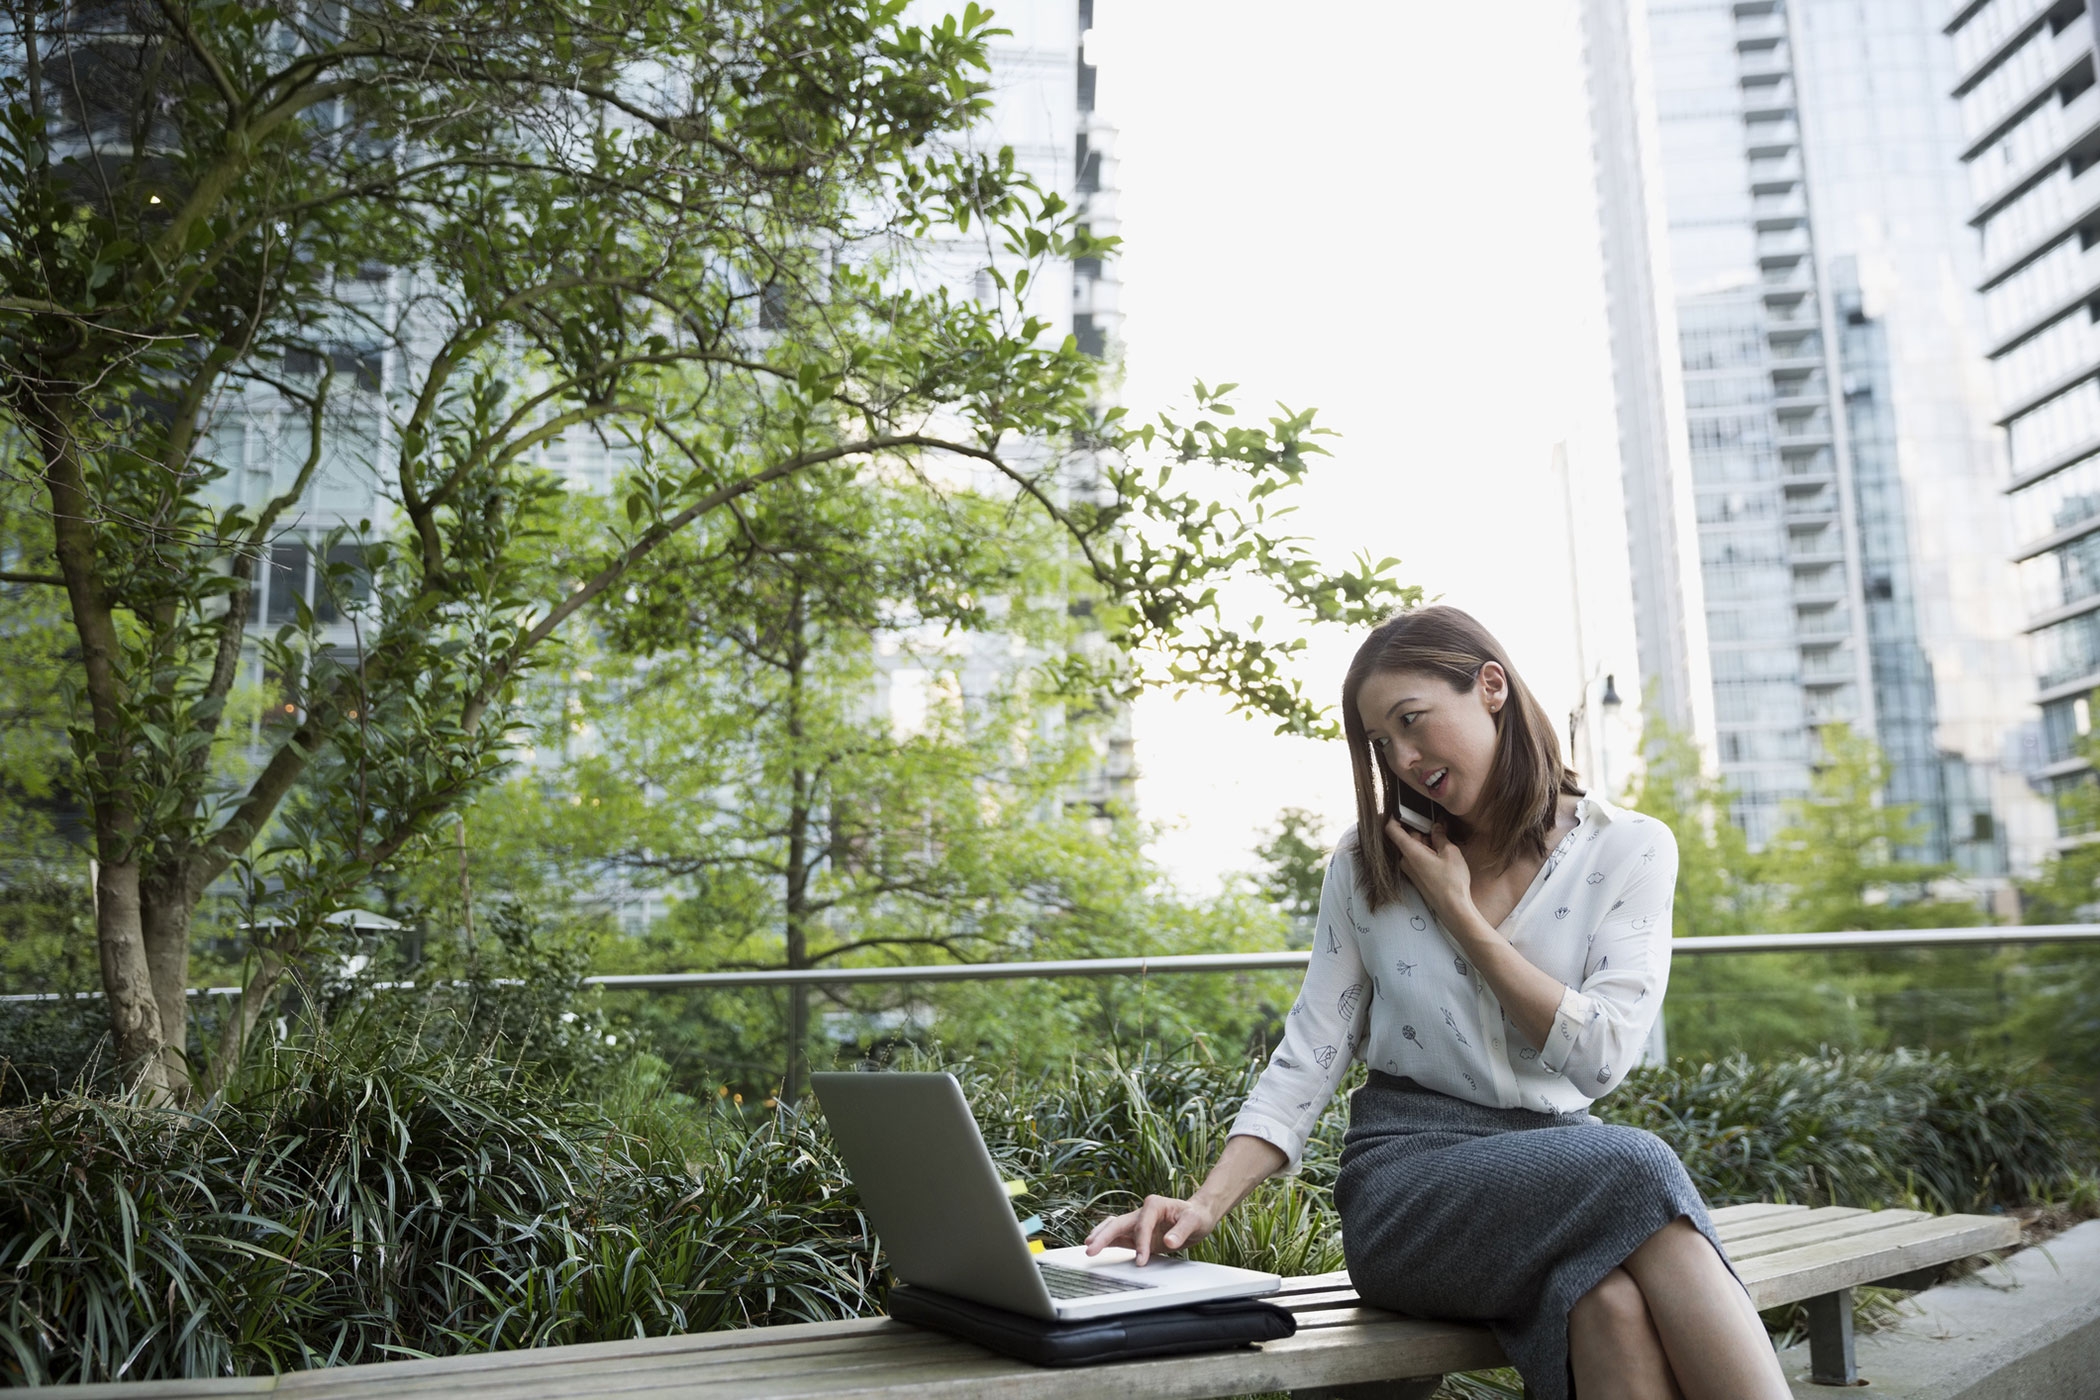 Woman working outside in urban area with phone and laptop